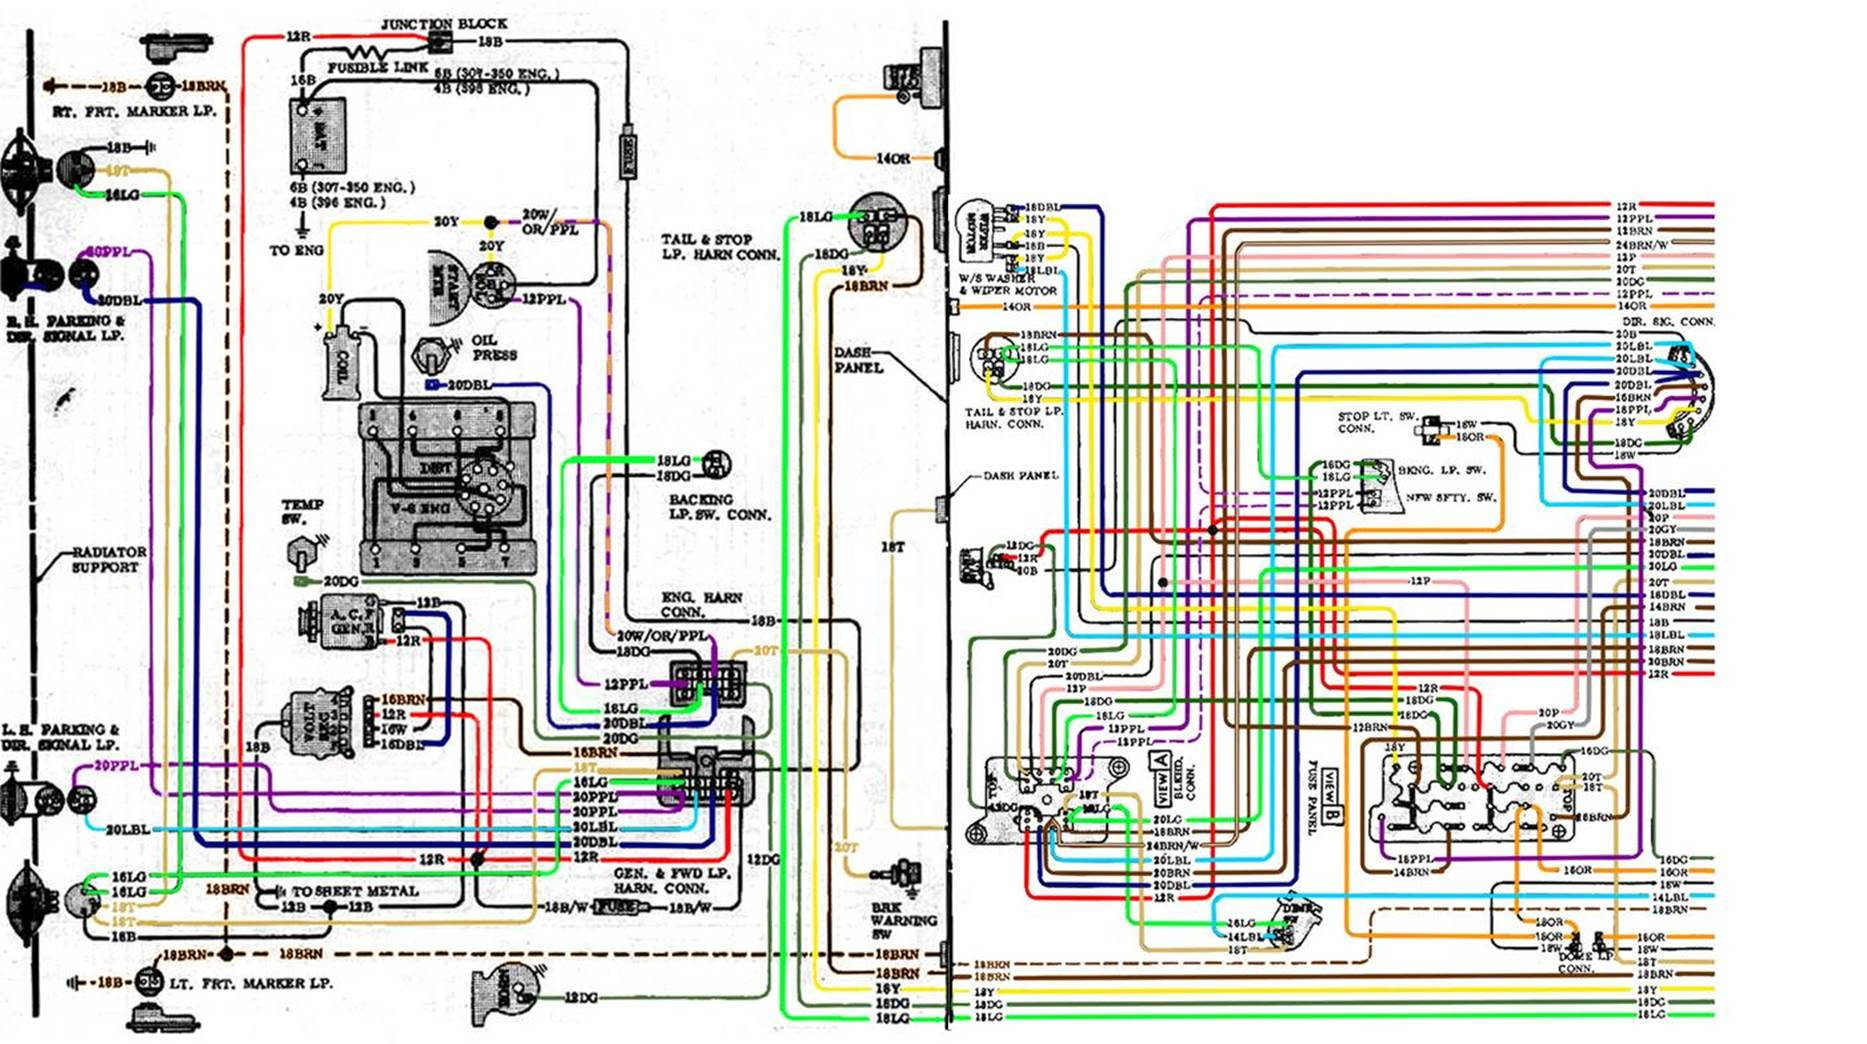 image002 67 72 chevy wiring diagram  at virtualis.co